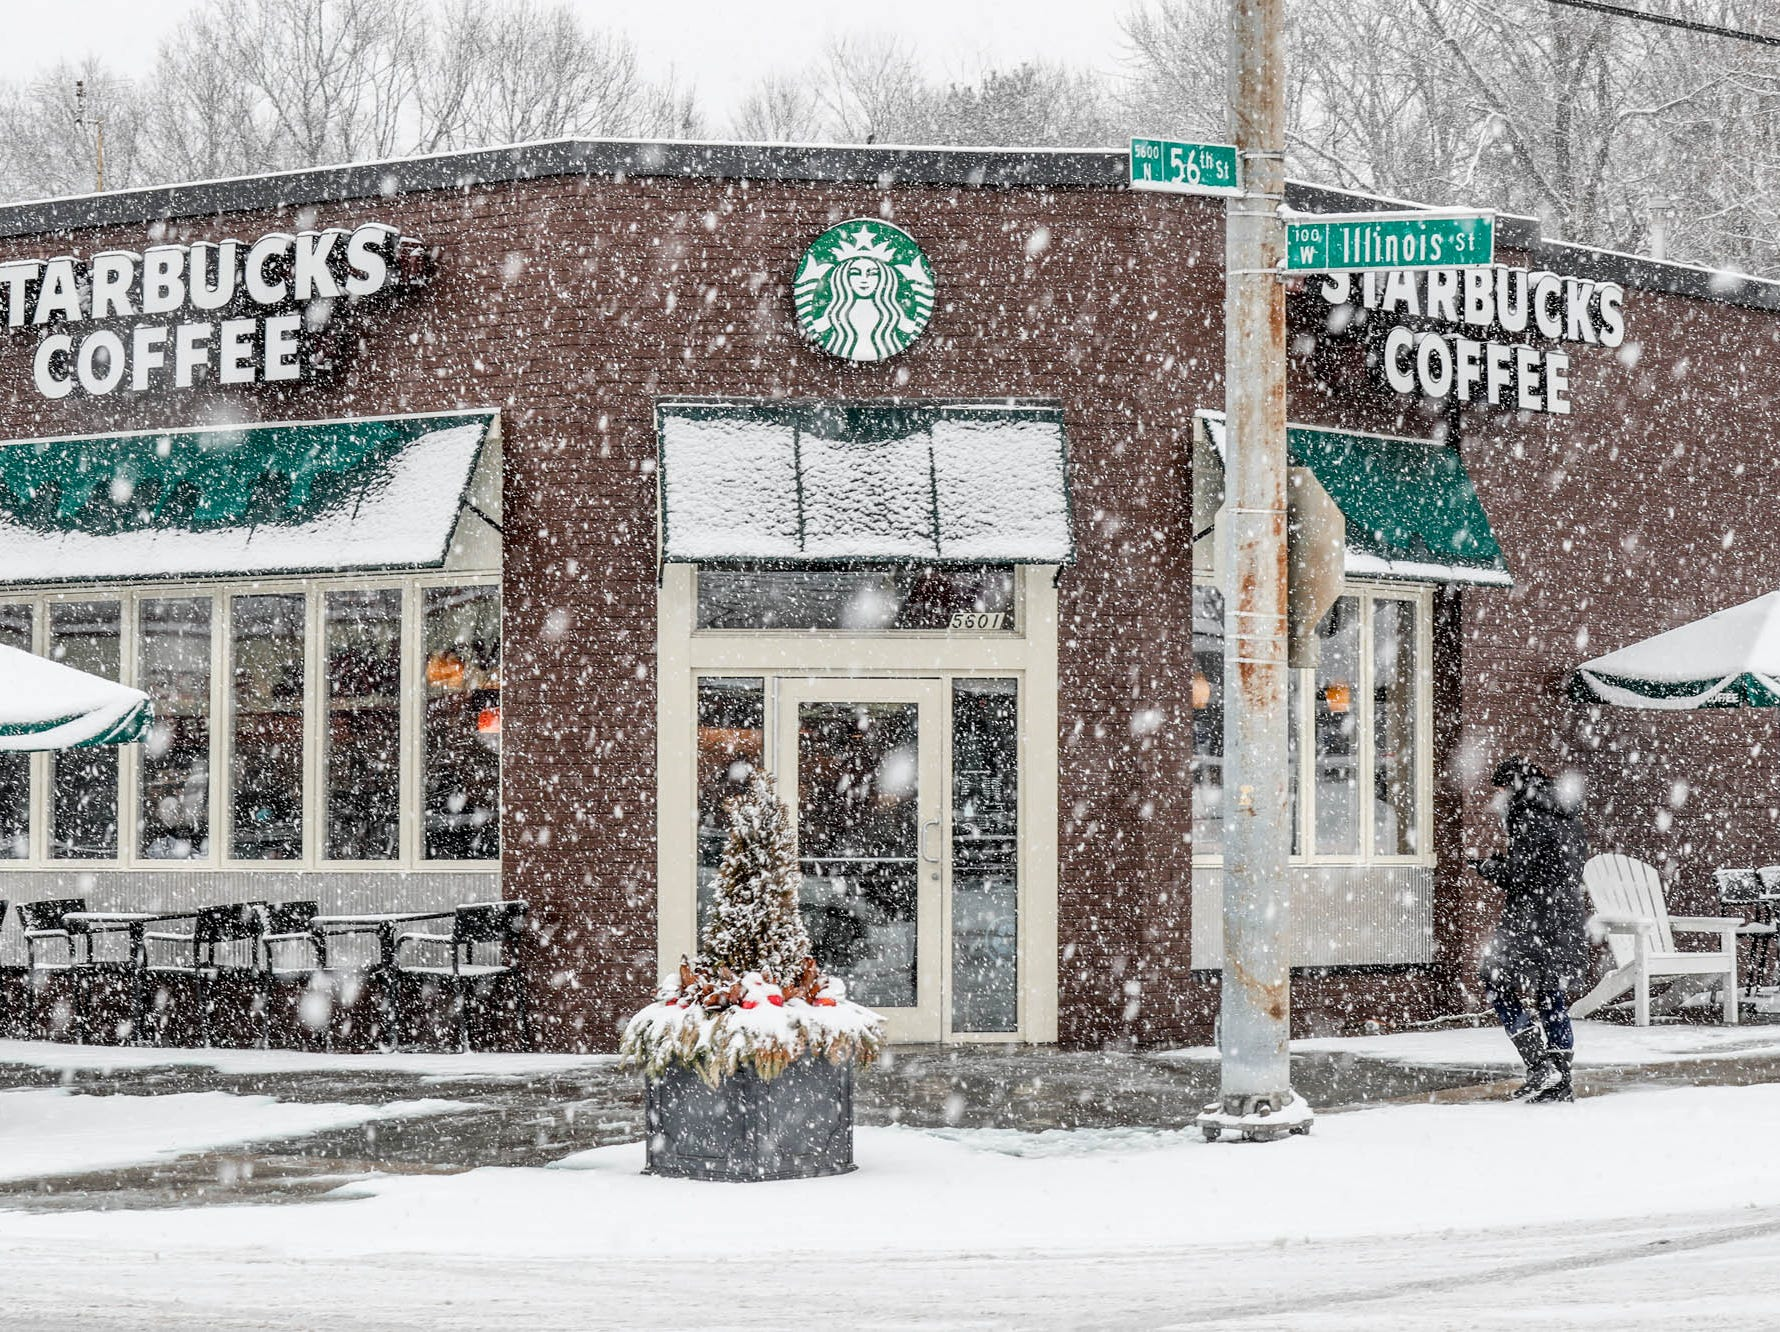 Snow falls at 65th and Illinois St. in Indianapolis on Sunday, Feb. 10, 2019.